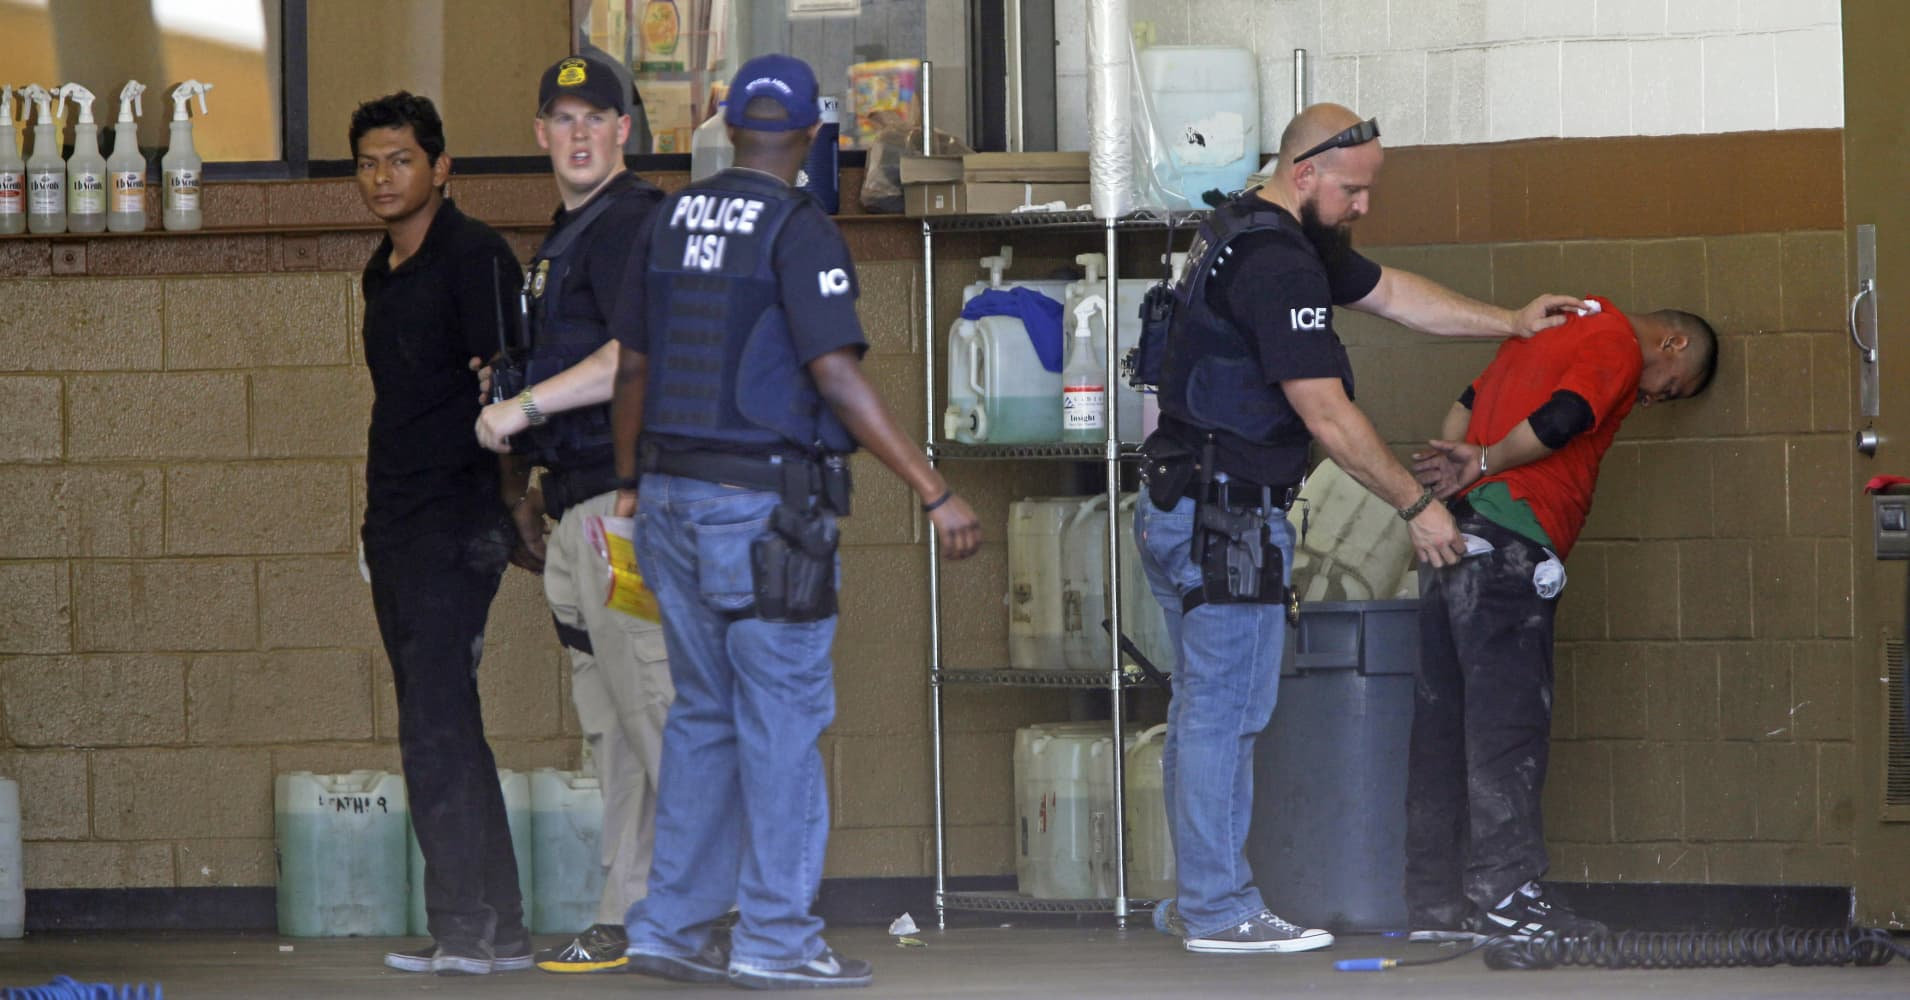 ICE agents detain workers outside a business.